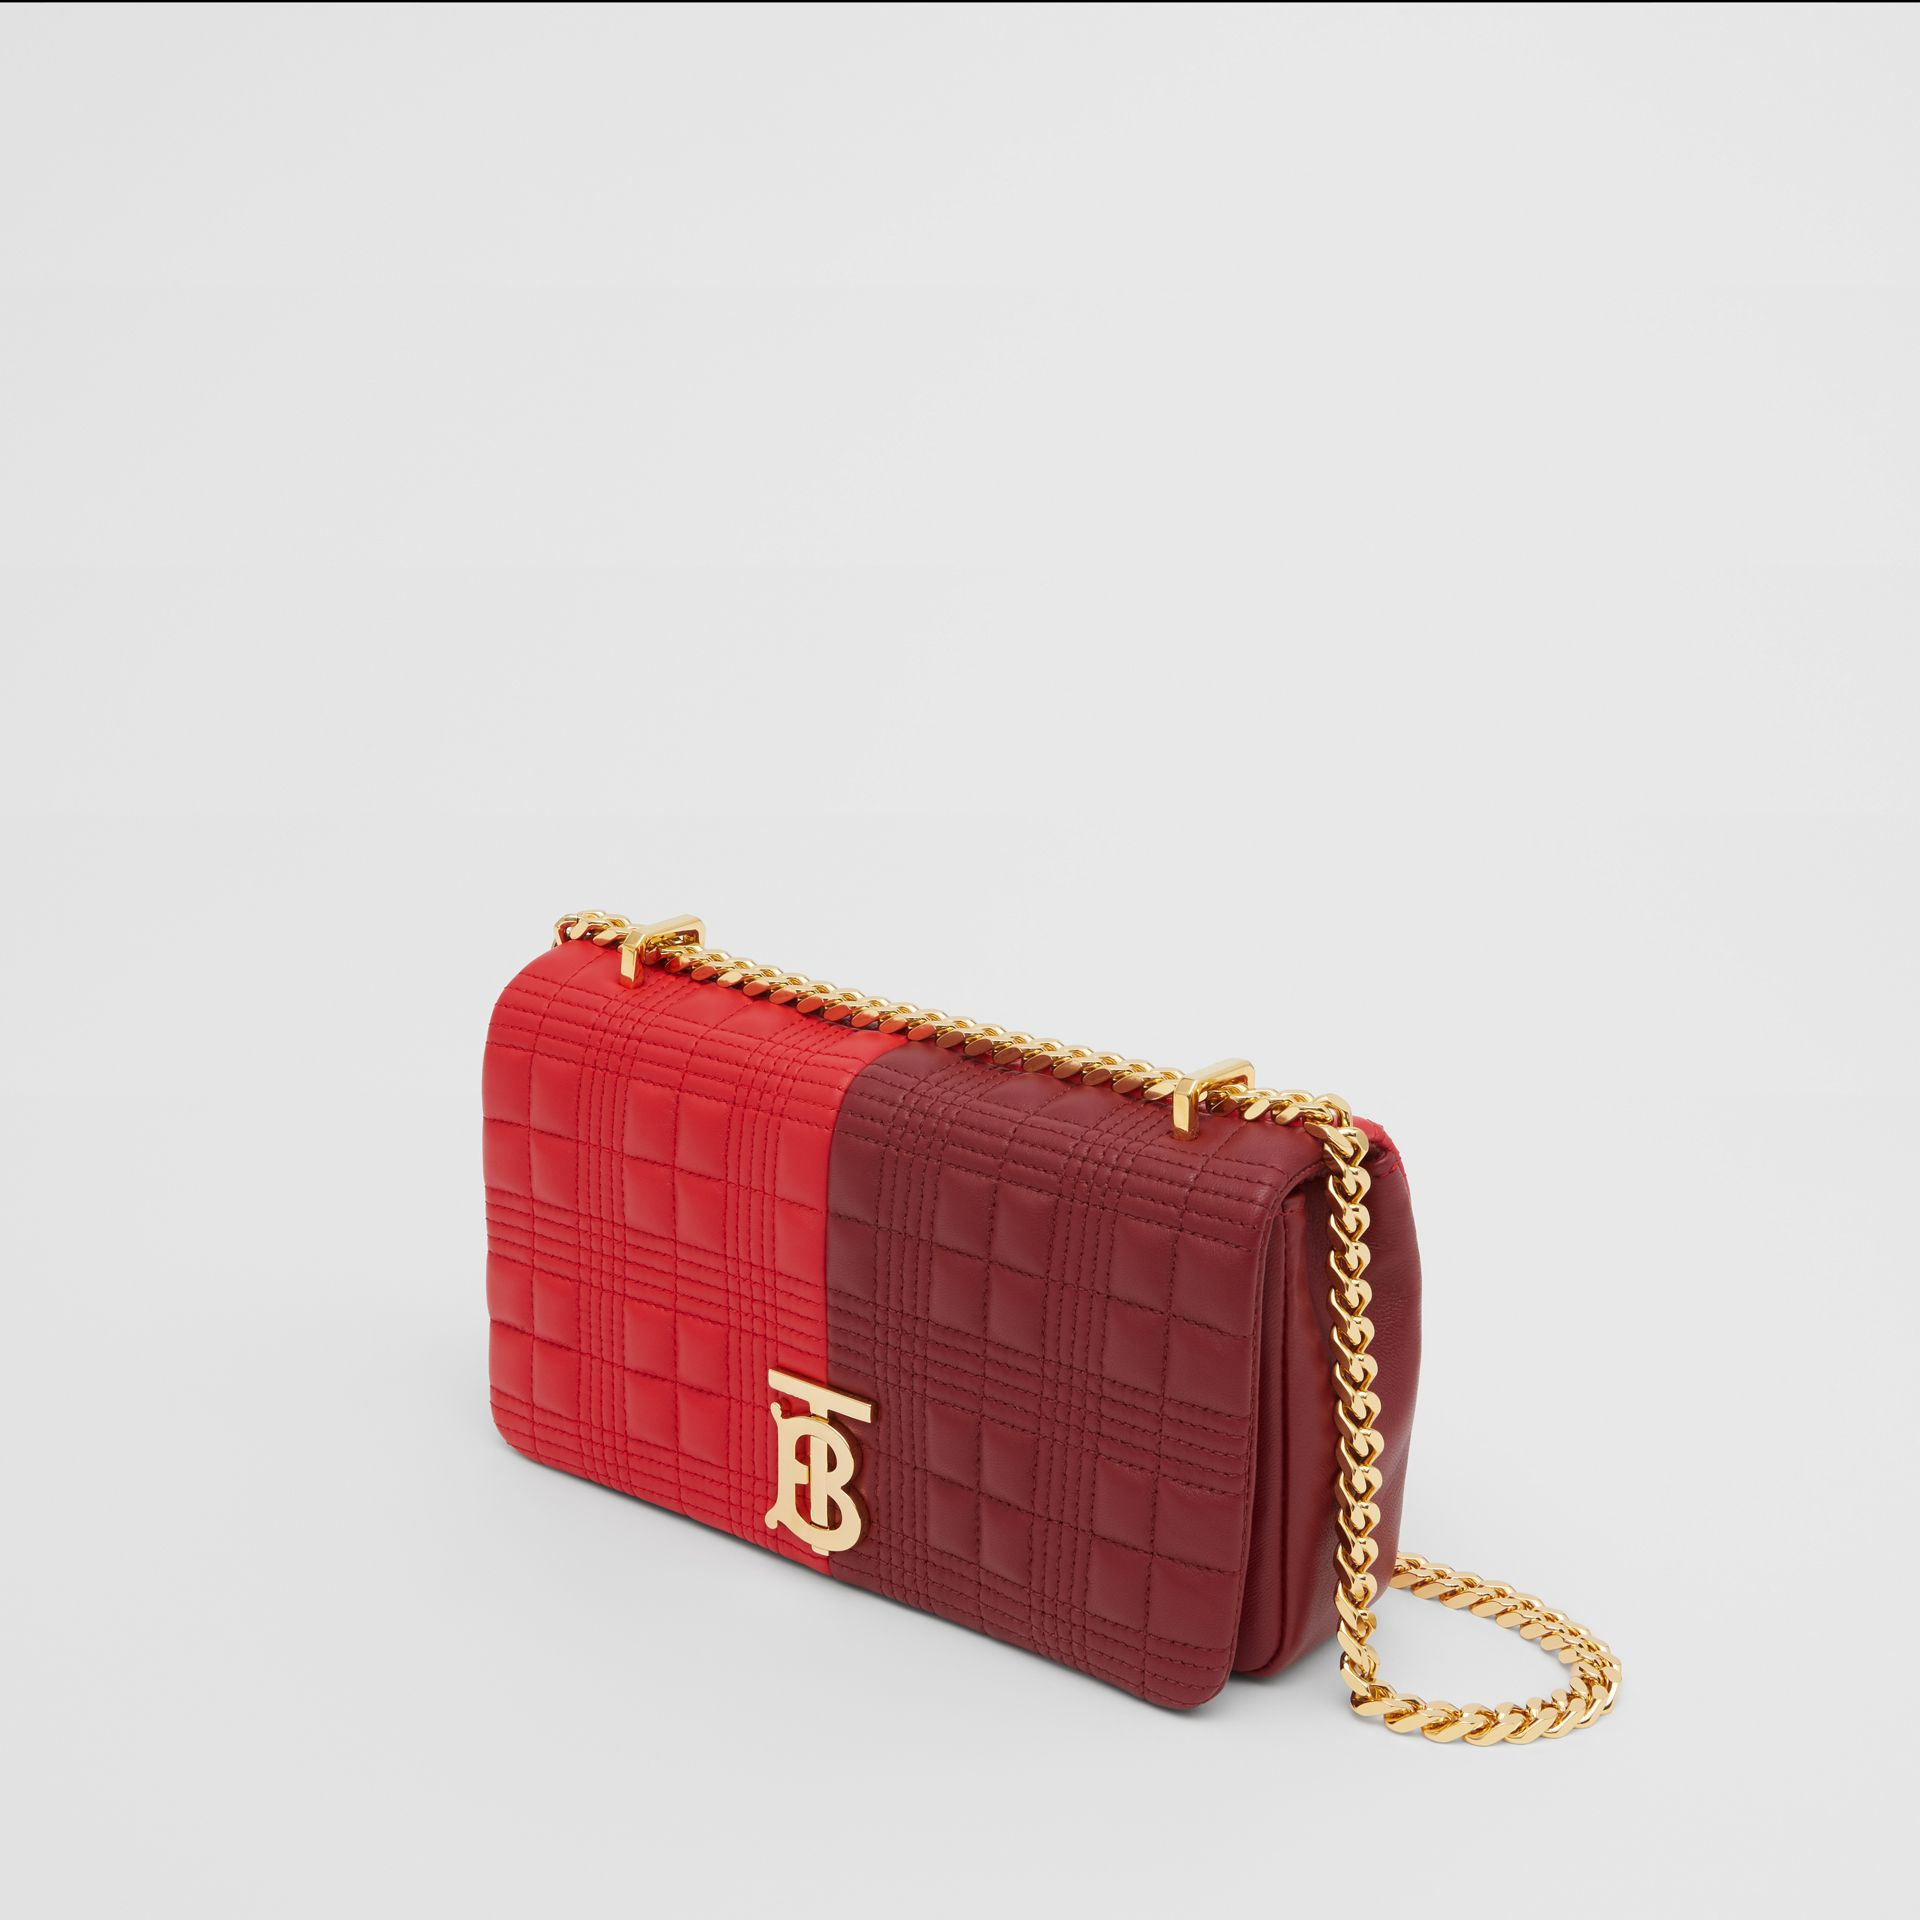 Small Quilted Colour Block Lambskin Lola Bag in Bright Red/burgundy - Women | Burberry United Kingdom - gallery image 3